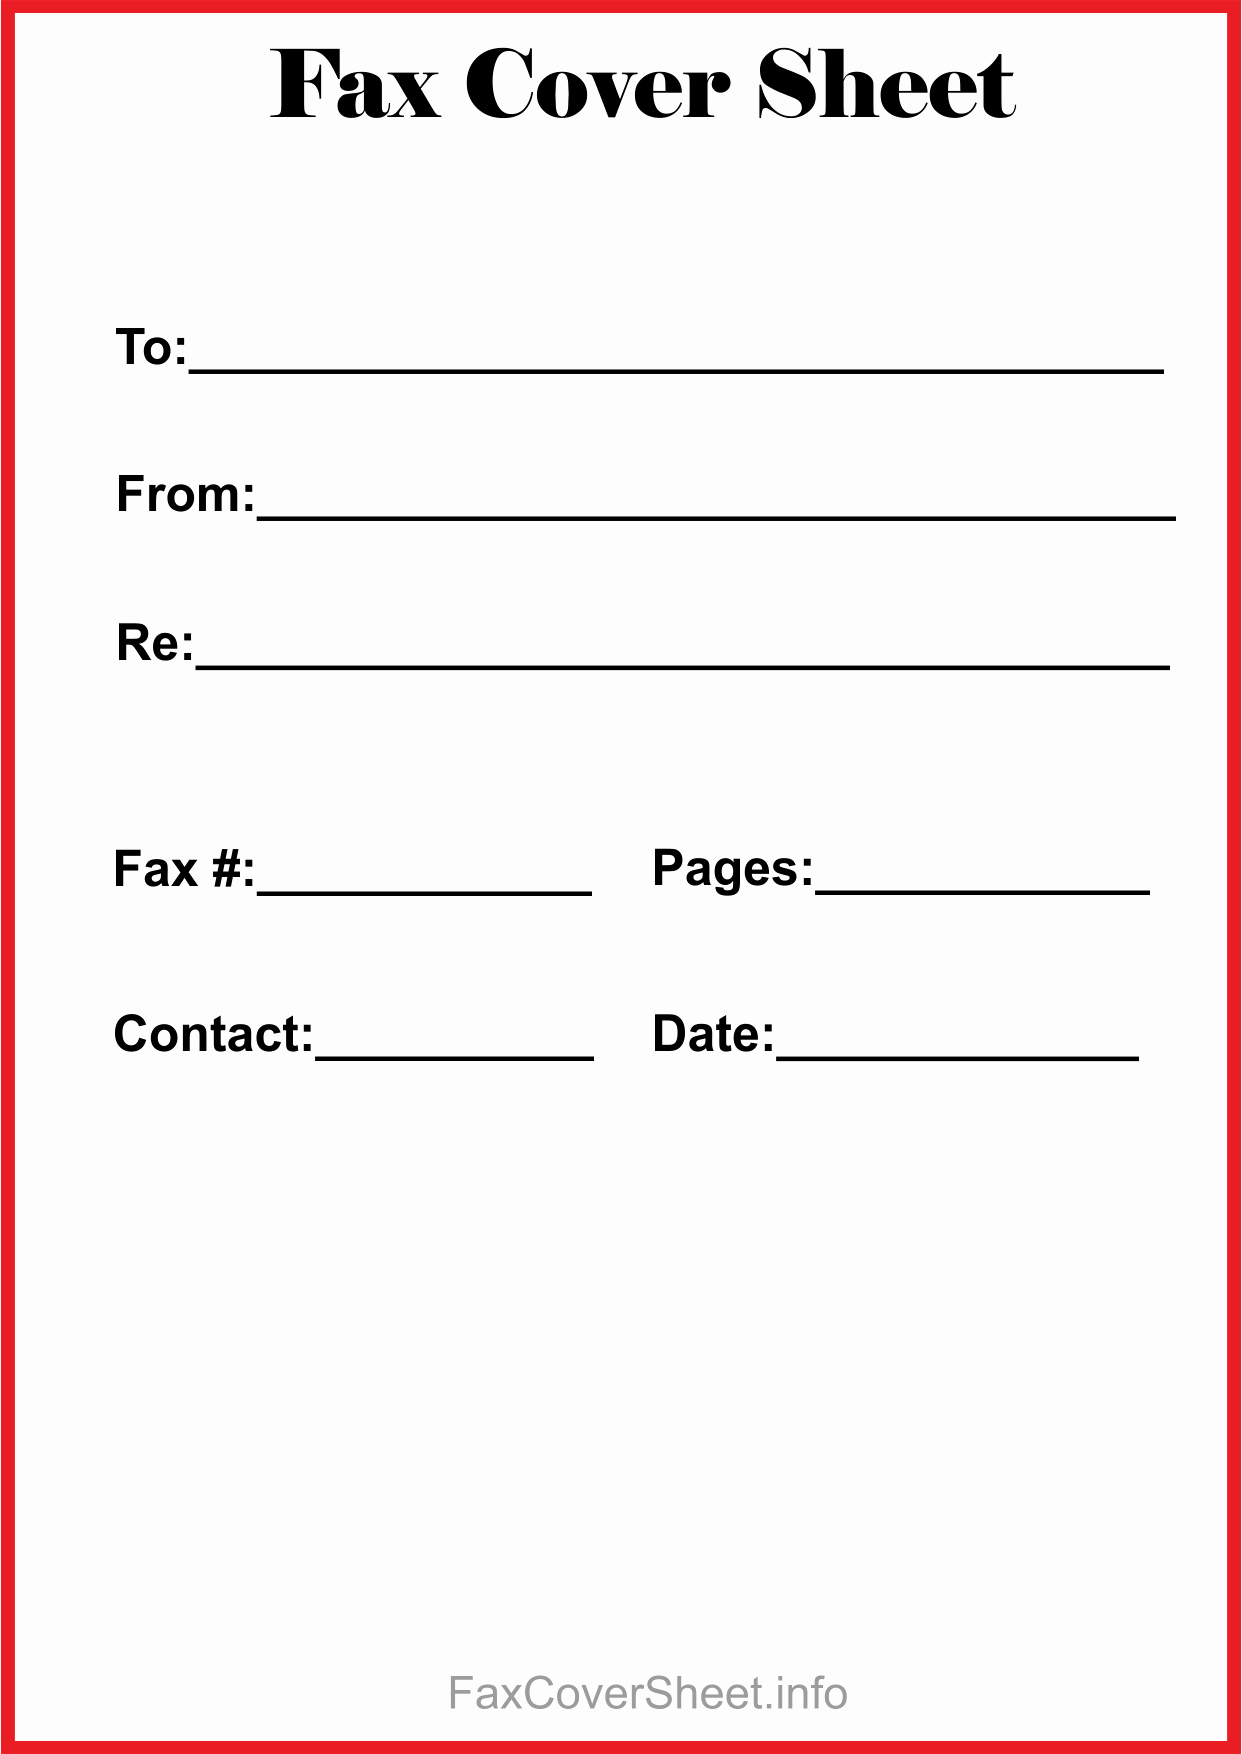 Word Fax Cover Sheet Fresh Free Fax Cover Sheet Template Download